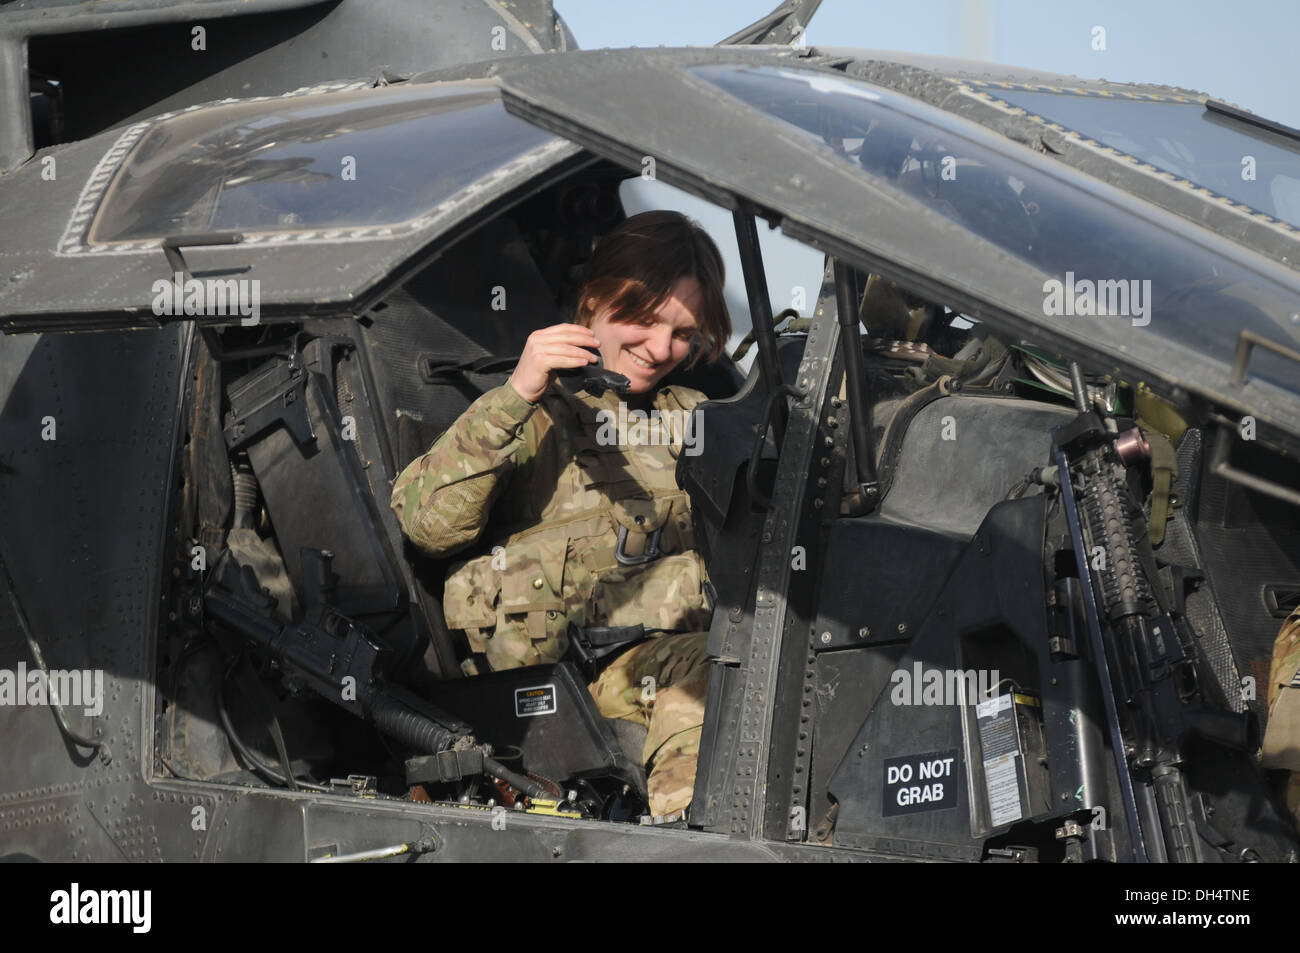 Chief Warrant Officer 2 Amanda Combs, an AH-64 Apache helicopter pilot serving under 2nd Battalion (Assault), 10th Combat Aviati - Stock Image